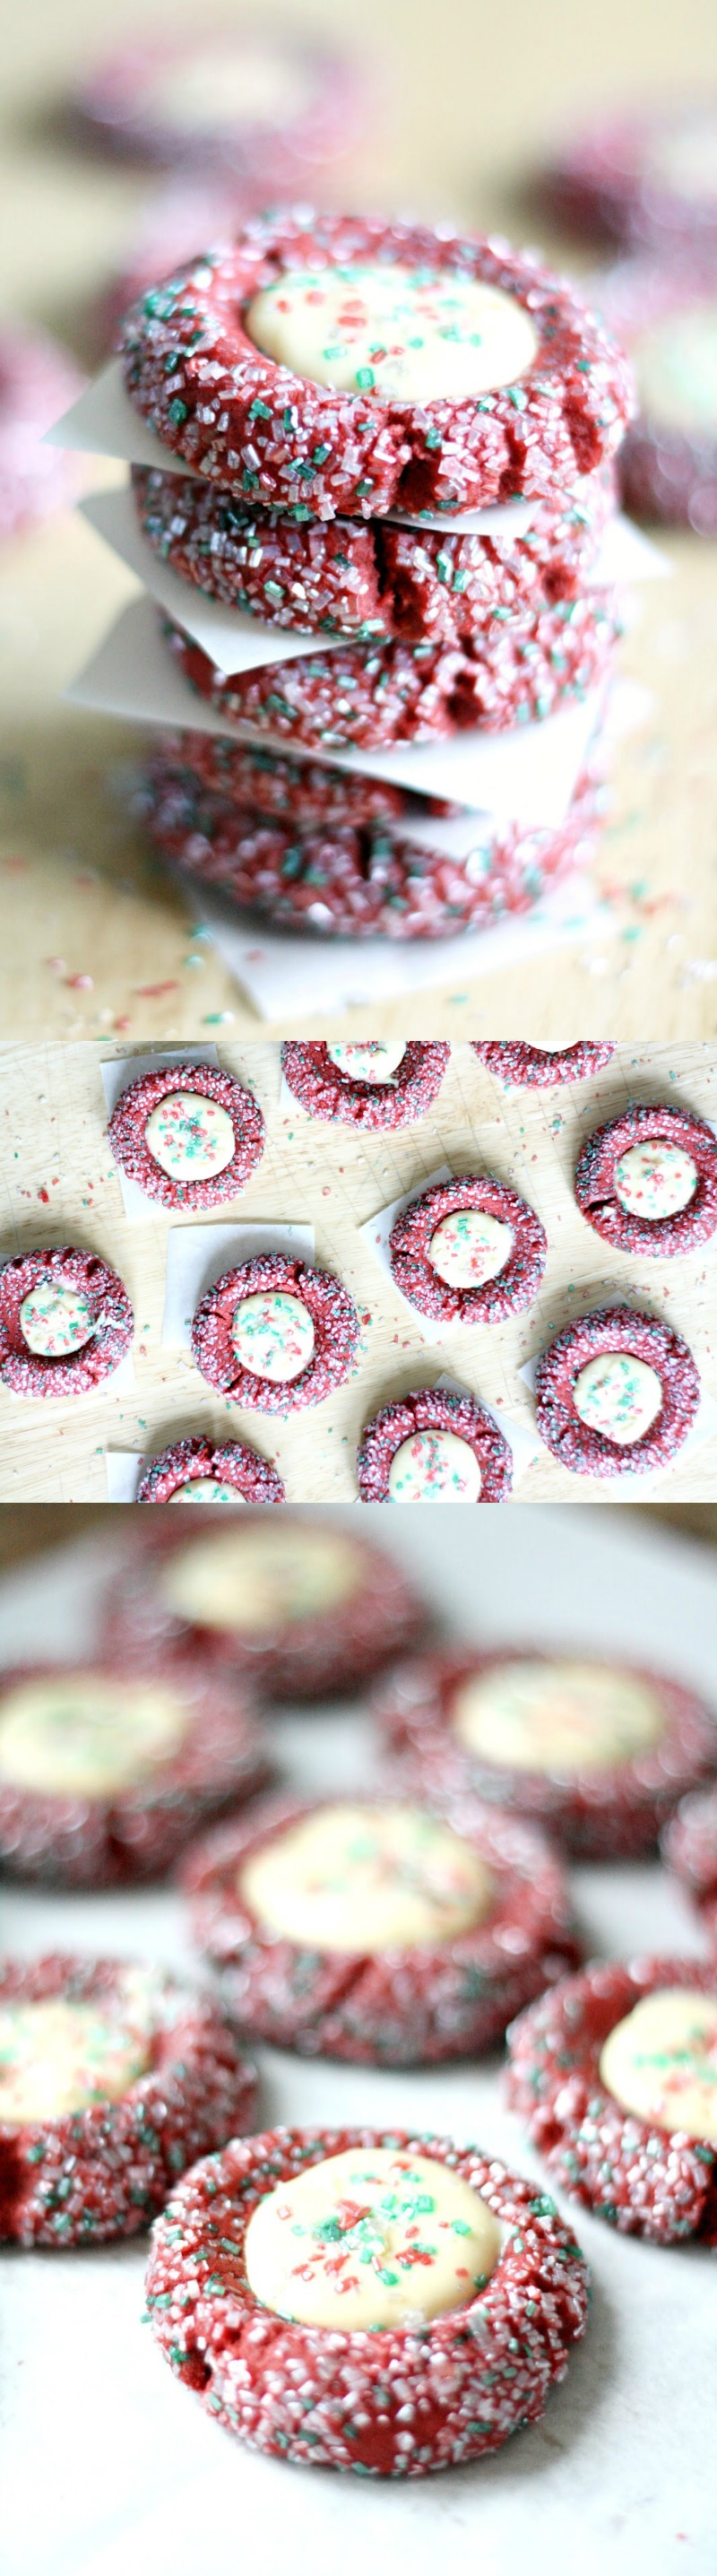 These red velvet thumbprint cookies are so rich and fluffy with the perfect amount of creamy cheesecake filling. They are perfectly festive and delicious!